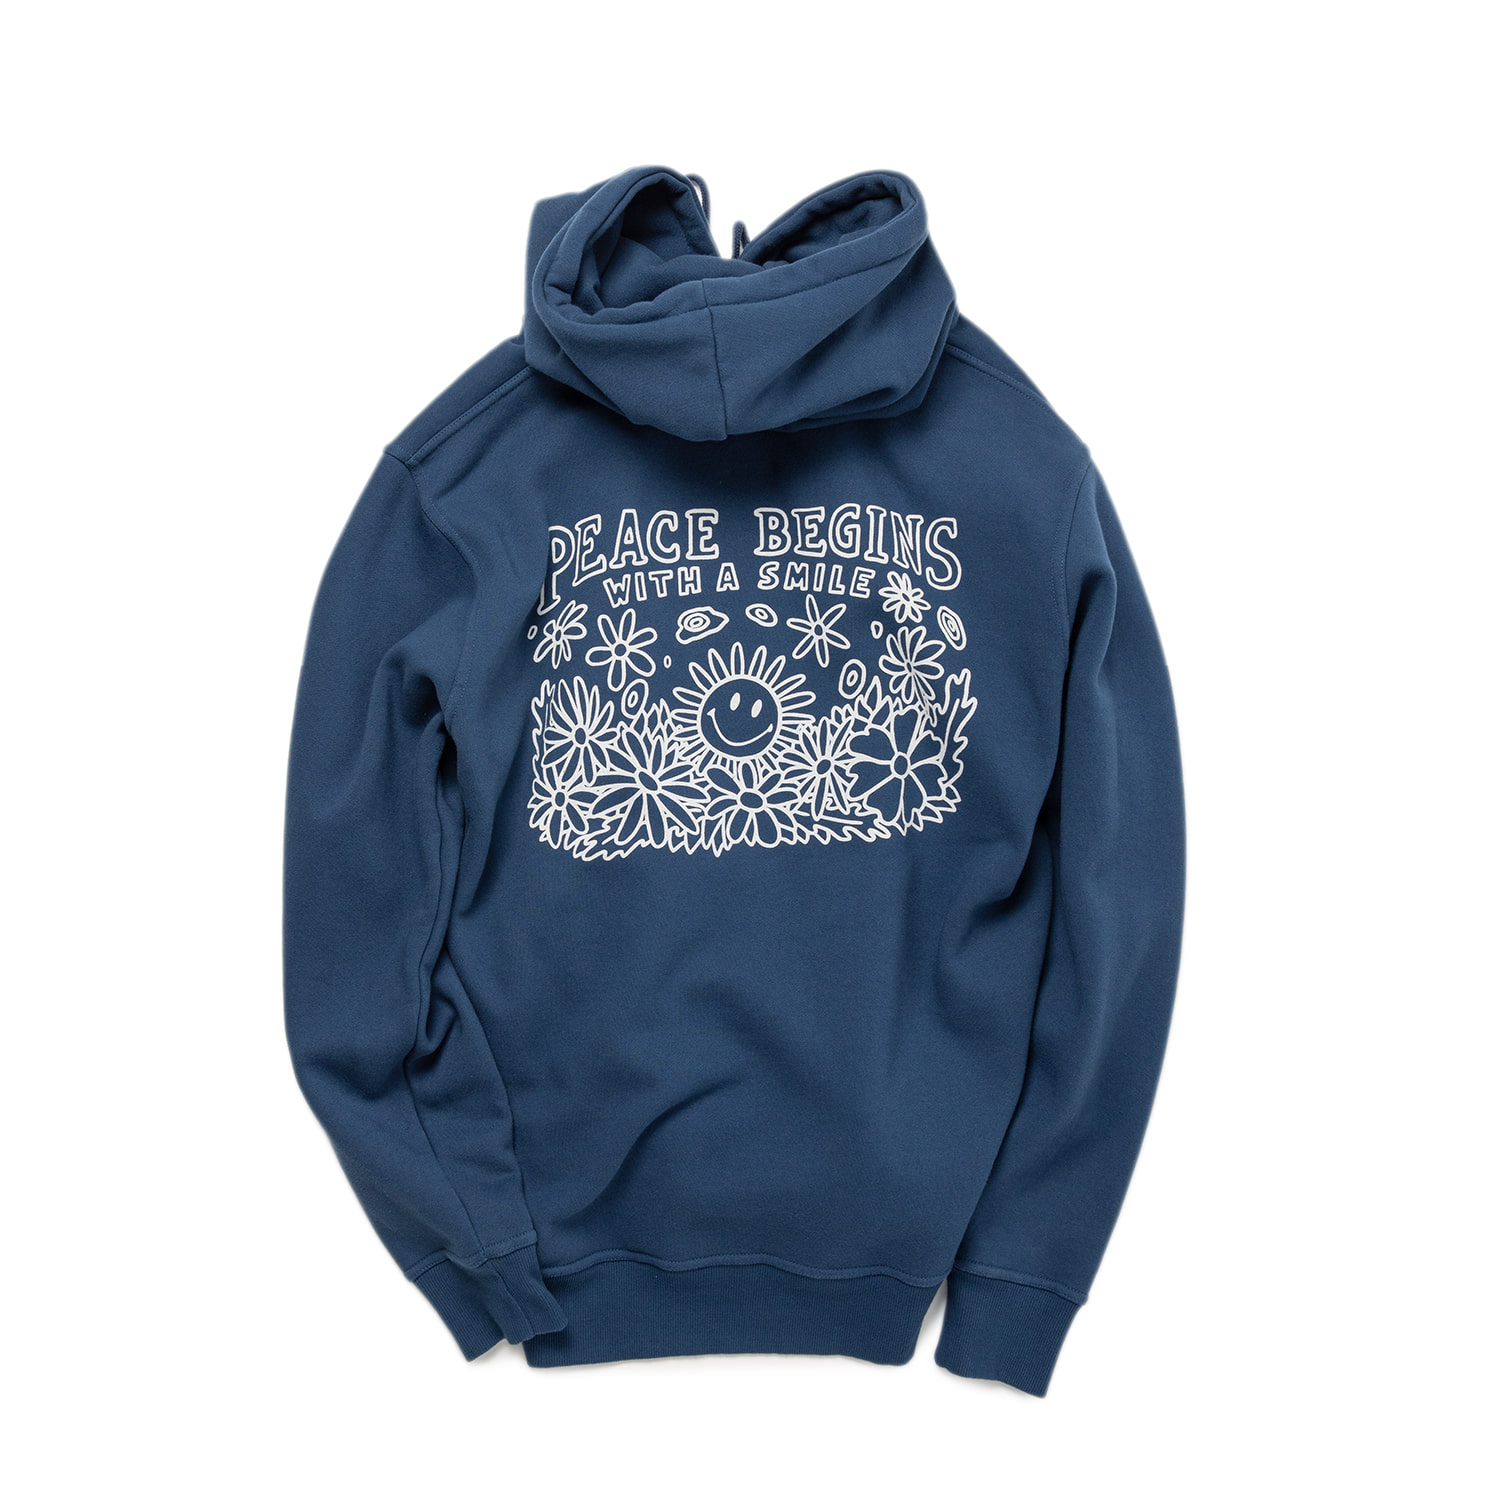 PEACE BEGIN SMILE HOODIE - INDIGO BLUE